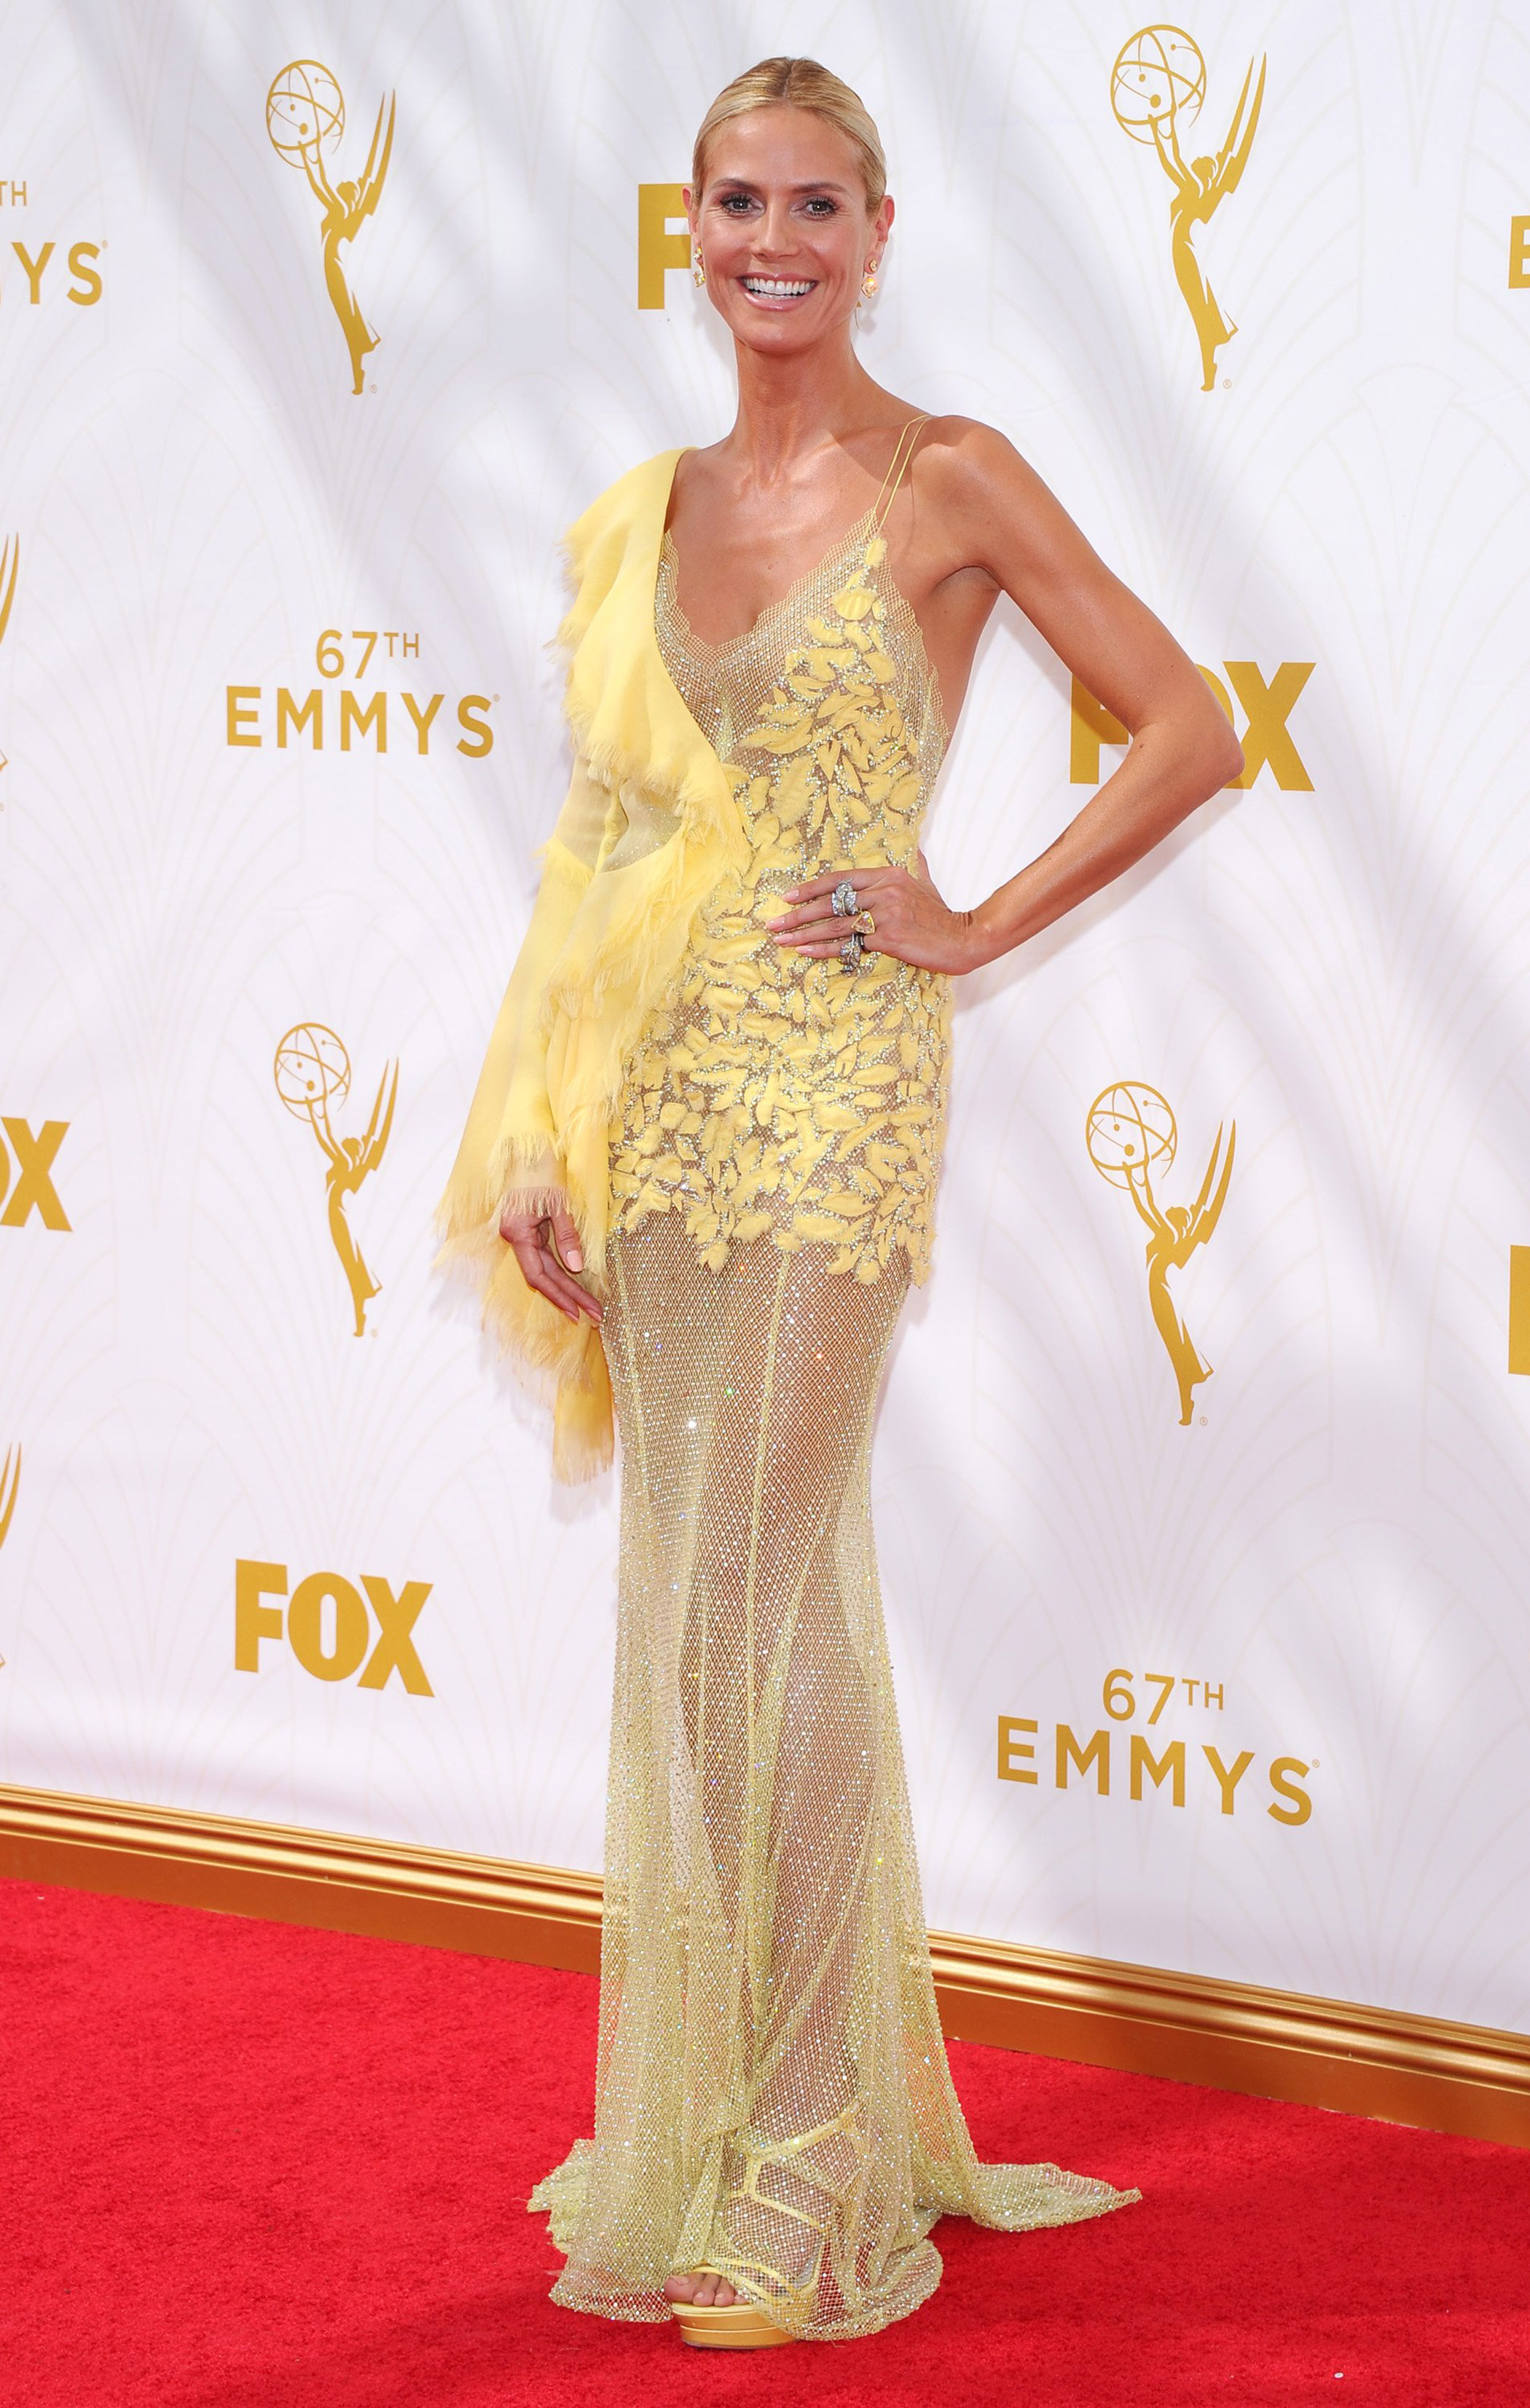 Heidi Klum at the 67th Emmy Award on Sept. 20, 2015 in Los Angeles.